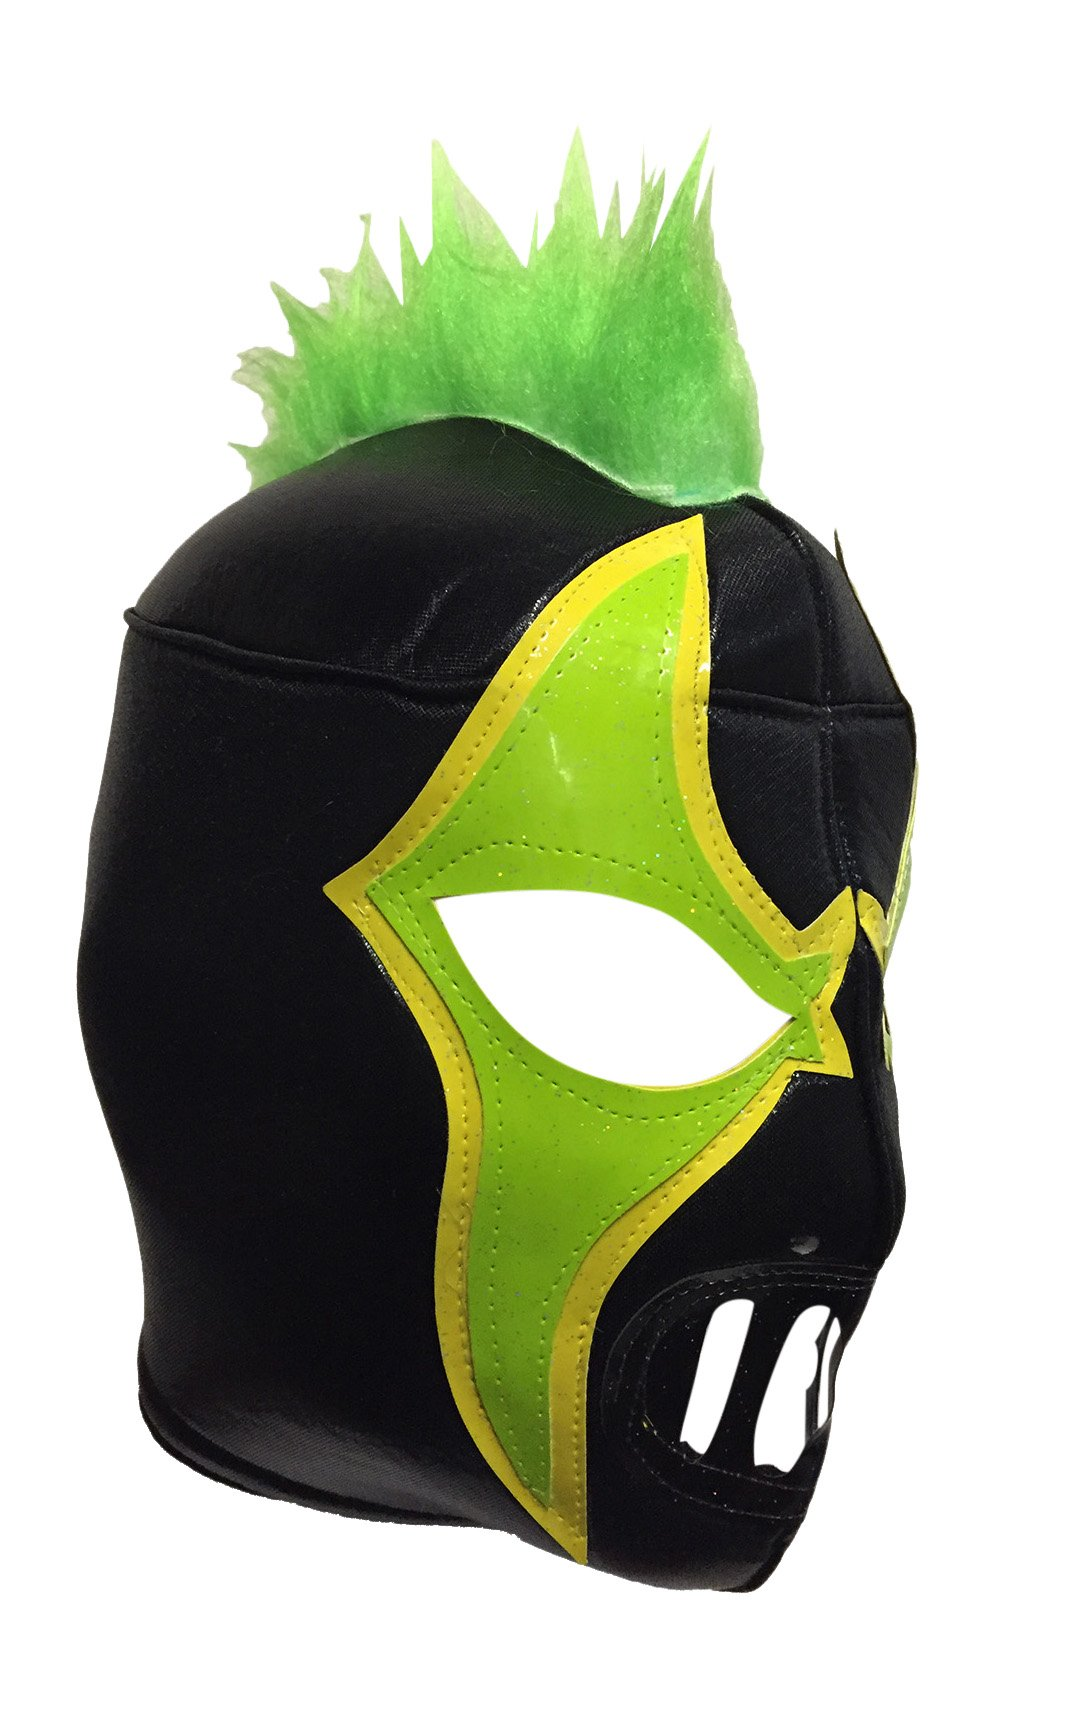 CRAZY CLOWN Adult Lucha Libre Wrestling Mask (pro-fit) Costume Wear - Black/Green by Mask Maniac